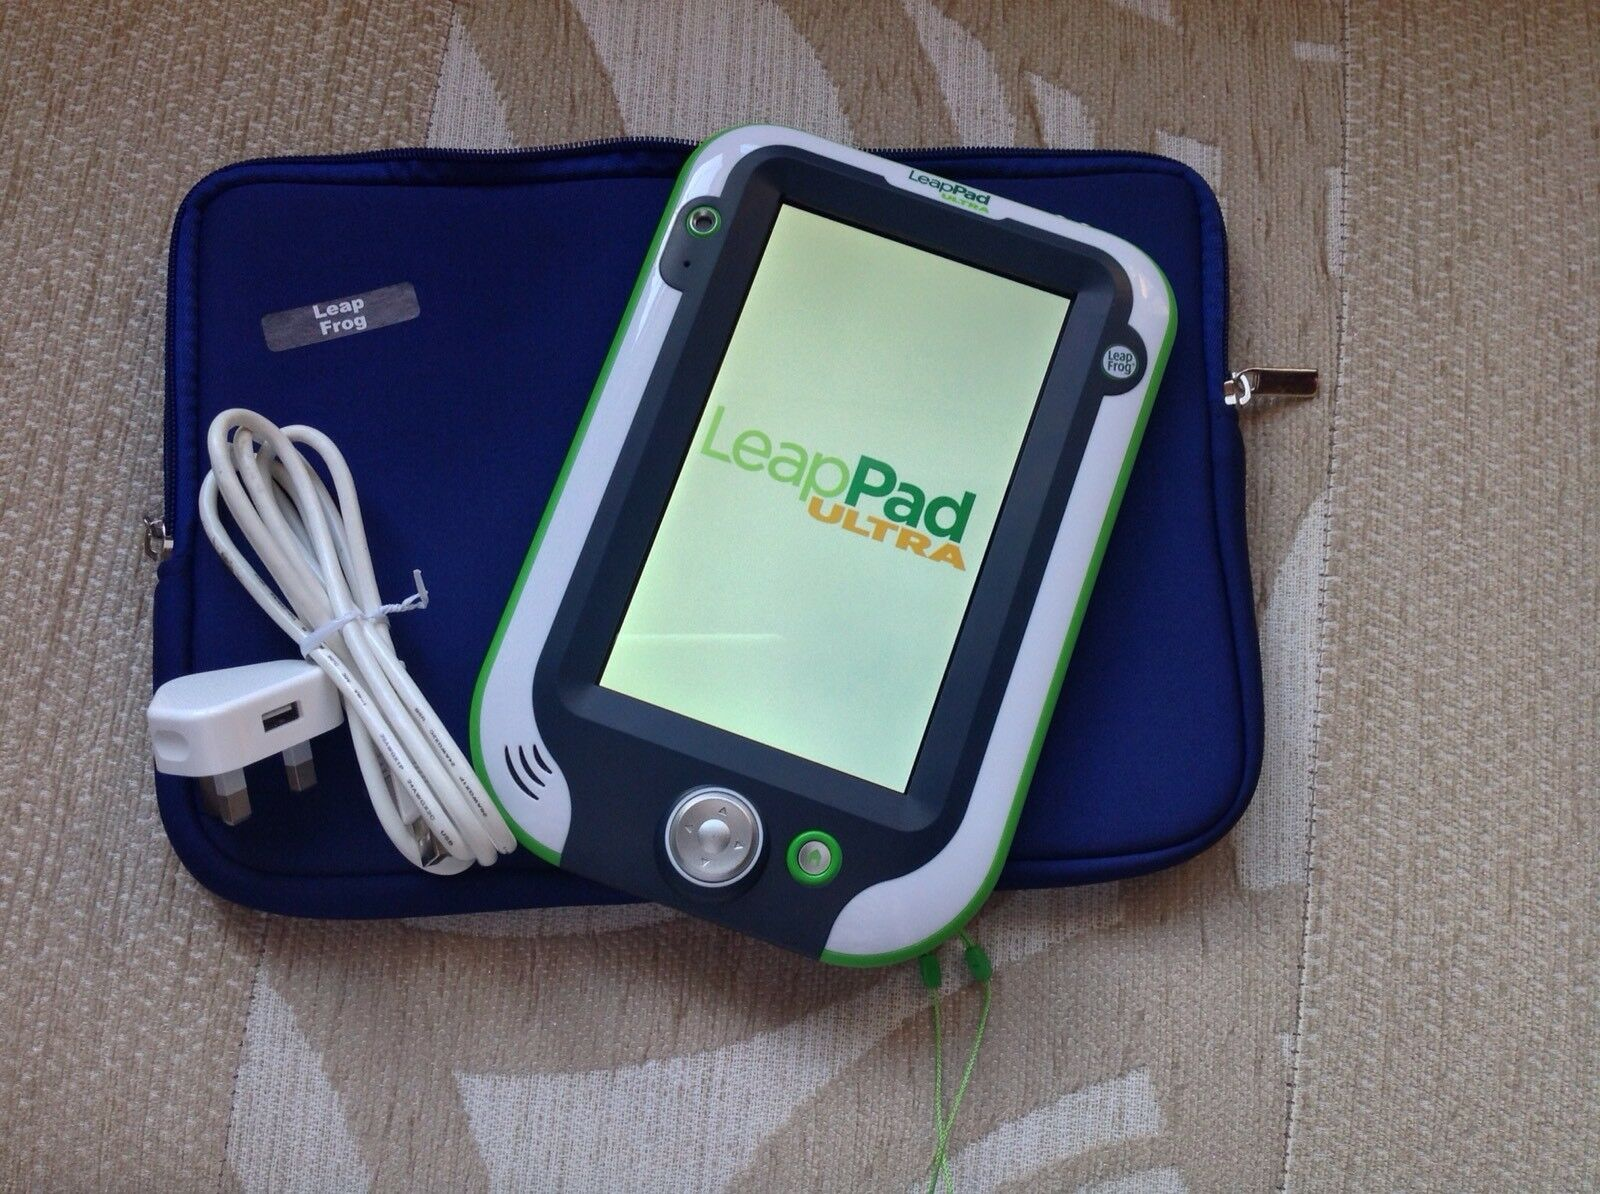 Leapfrog Leappad Ultra Green  New Storage Bag bluee Or Pink charger Cable..